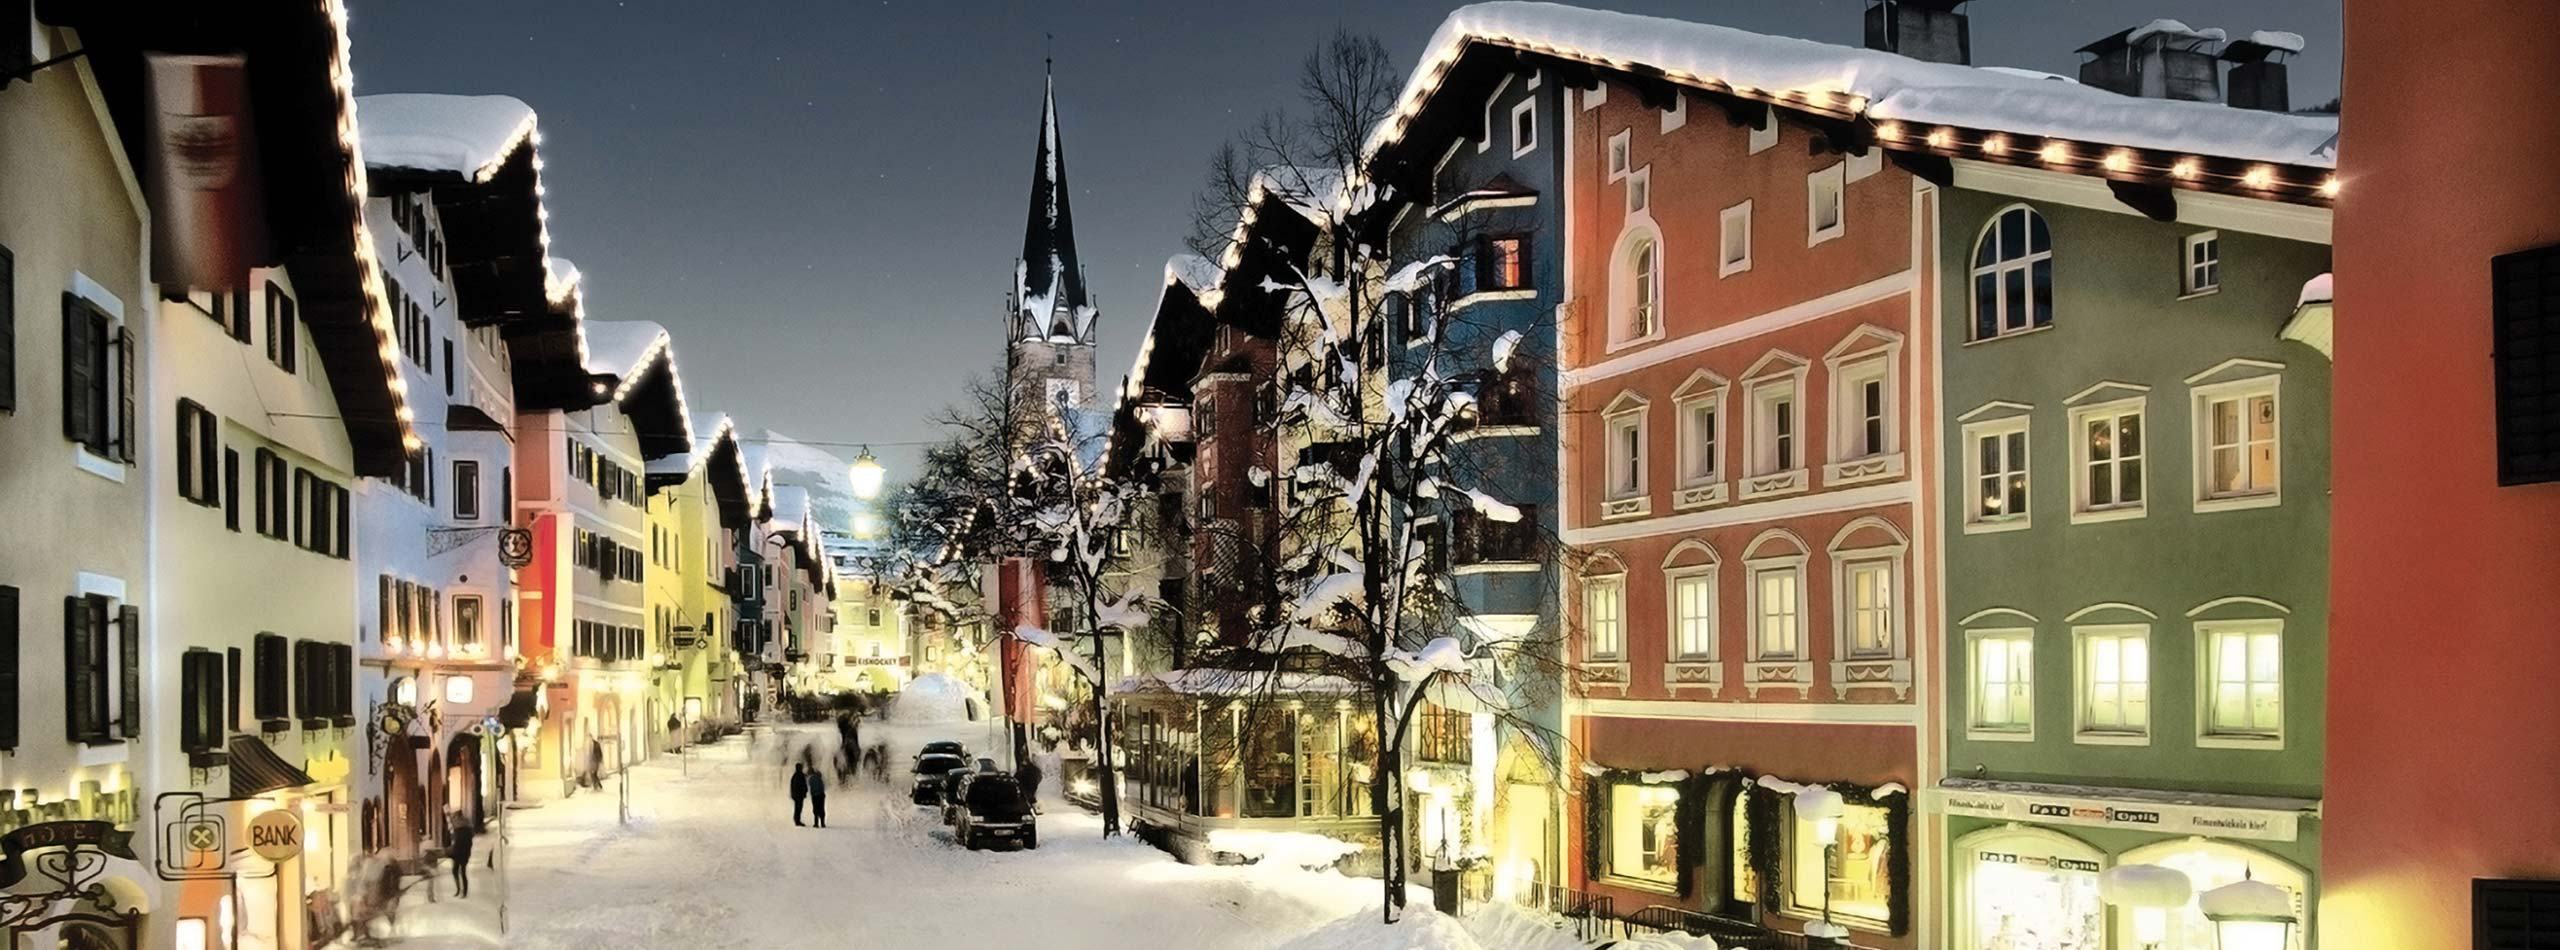 Aprés-Ski, shopping, nightlife in the Kitzbühel Alps Hotel Rosengarten